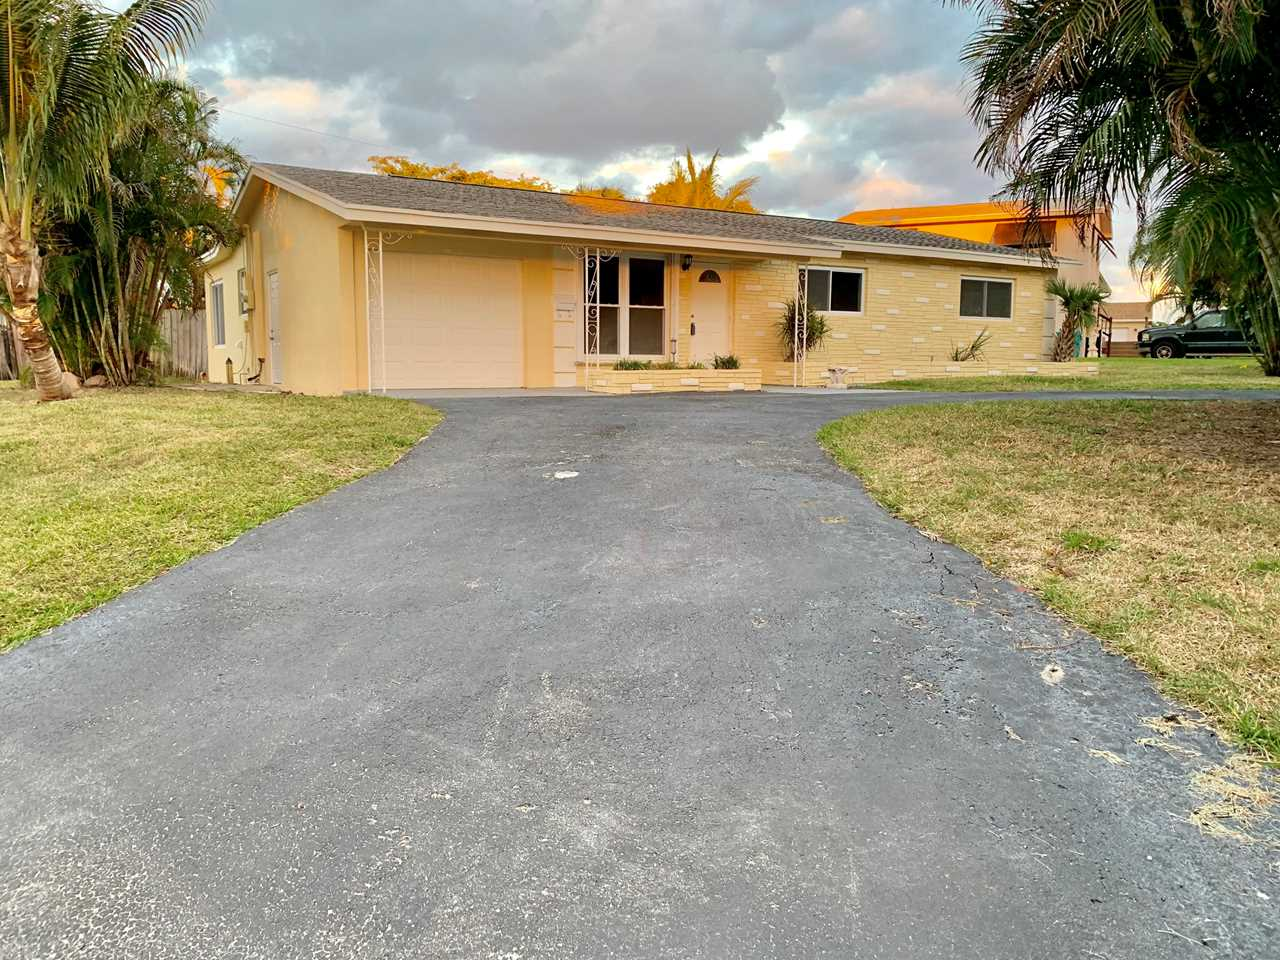 345 SW 10Th Avenue Boynton Beach, FL 33435 - MLS# RX-10494785 | BoyntonBeachRealEstate.com Photo 1